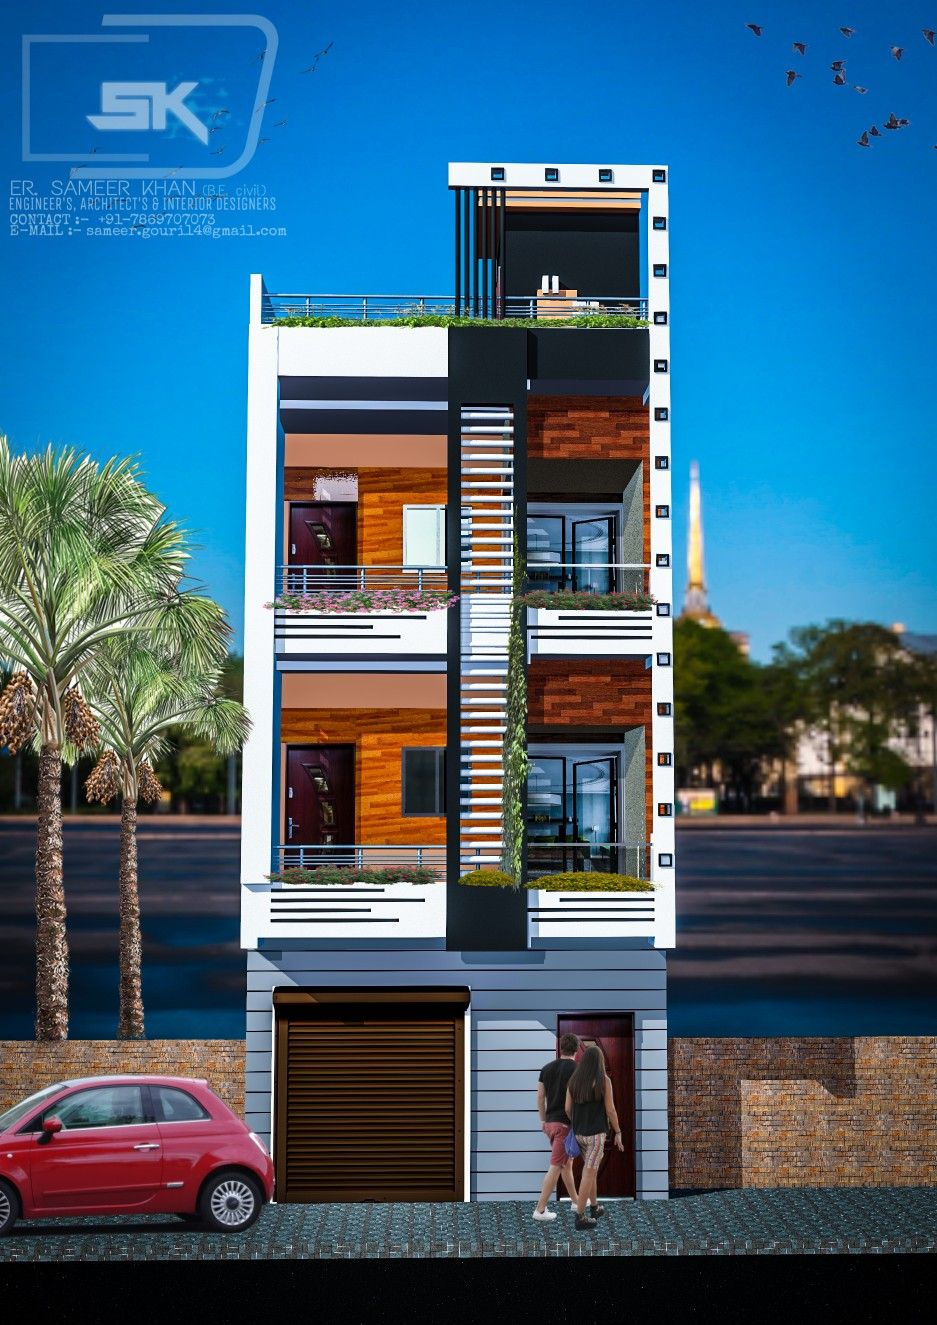 House Front Design Small House Elevation Design Architectural House Plans: Introducing Modern House Exterior Elevations Of G+2 House With Shop By Er. SAMEER KHAN #moder